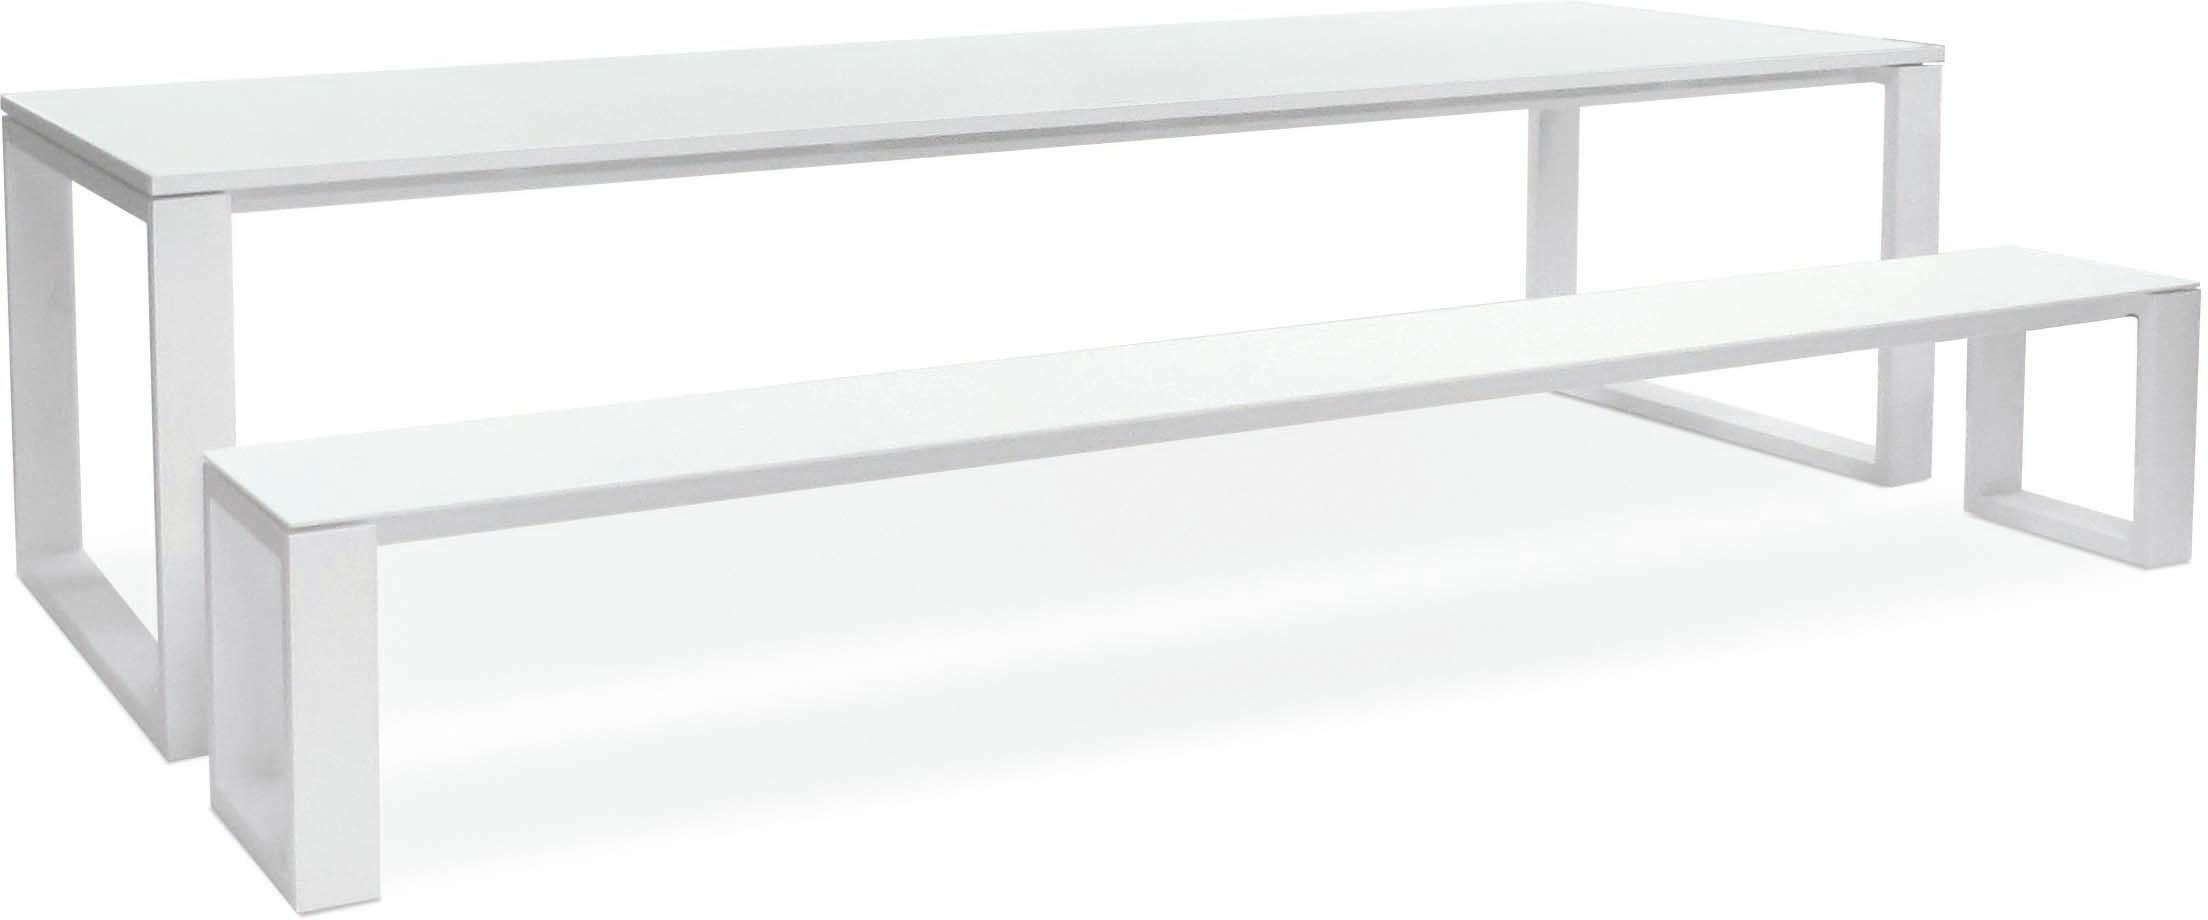 Fuse bench 300 - white